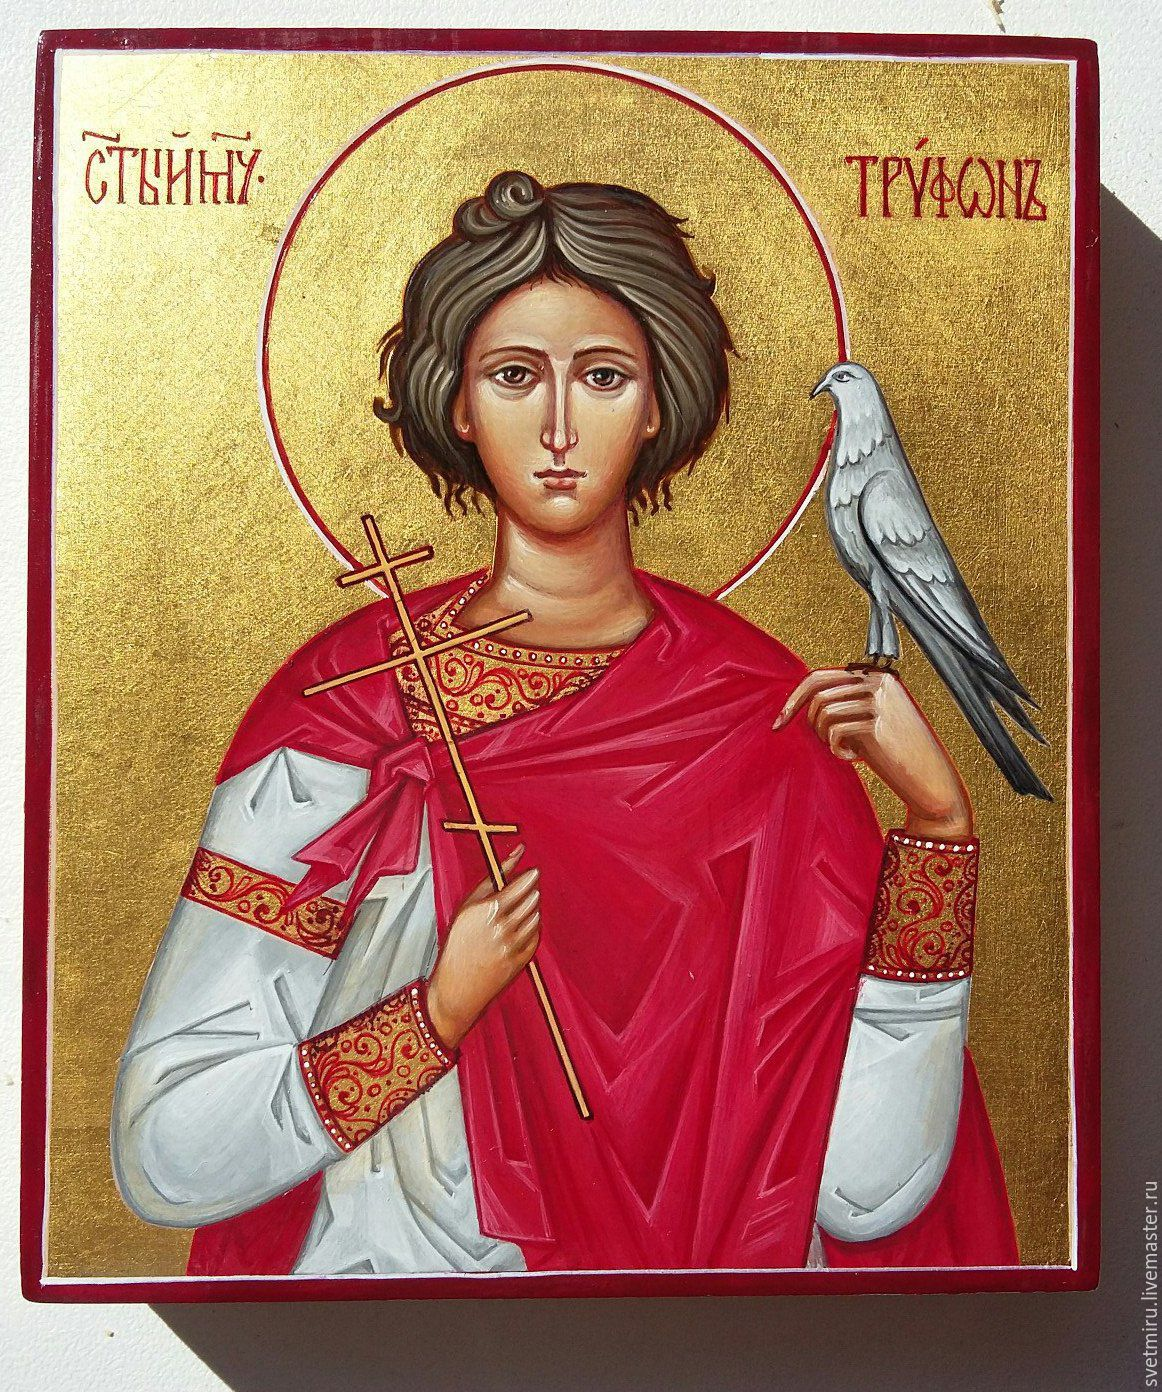 The Holy Martyr Tryphon.Photo taken in sunlight,making clear the game gold in the light. In the next photo icon in daylight and paint the icon closer to the original.